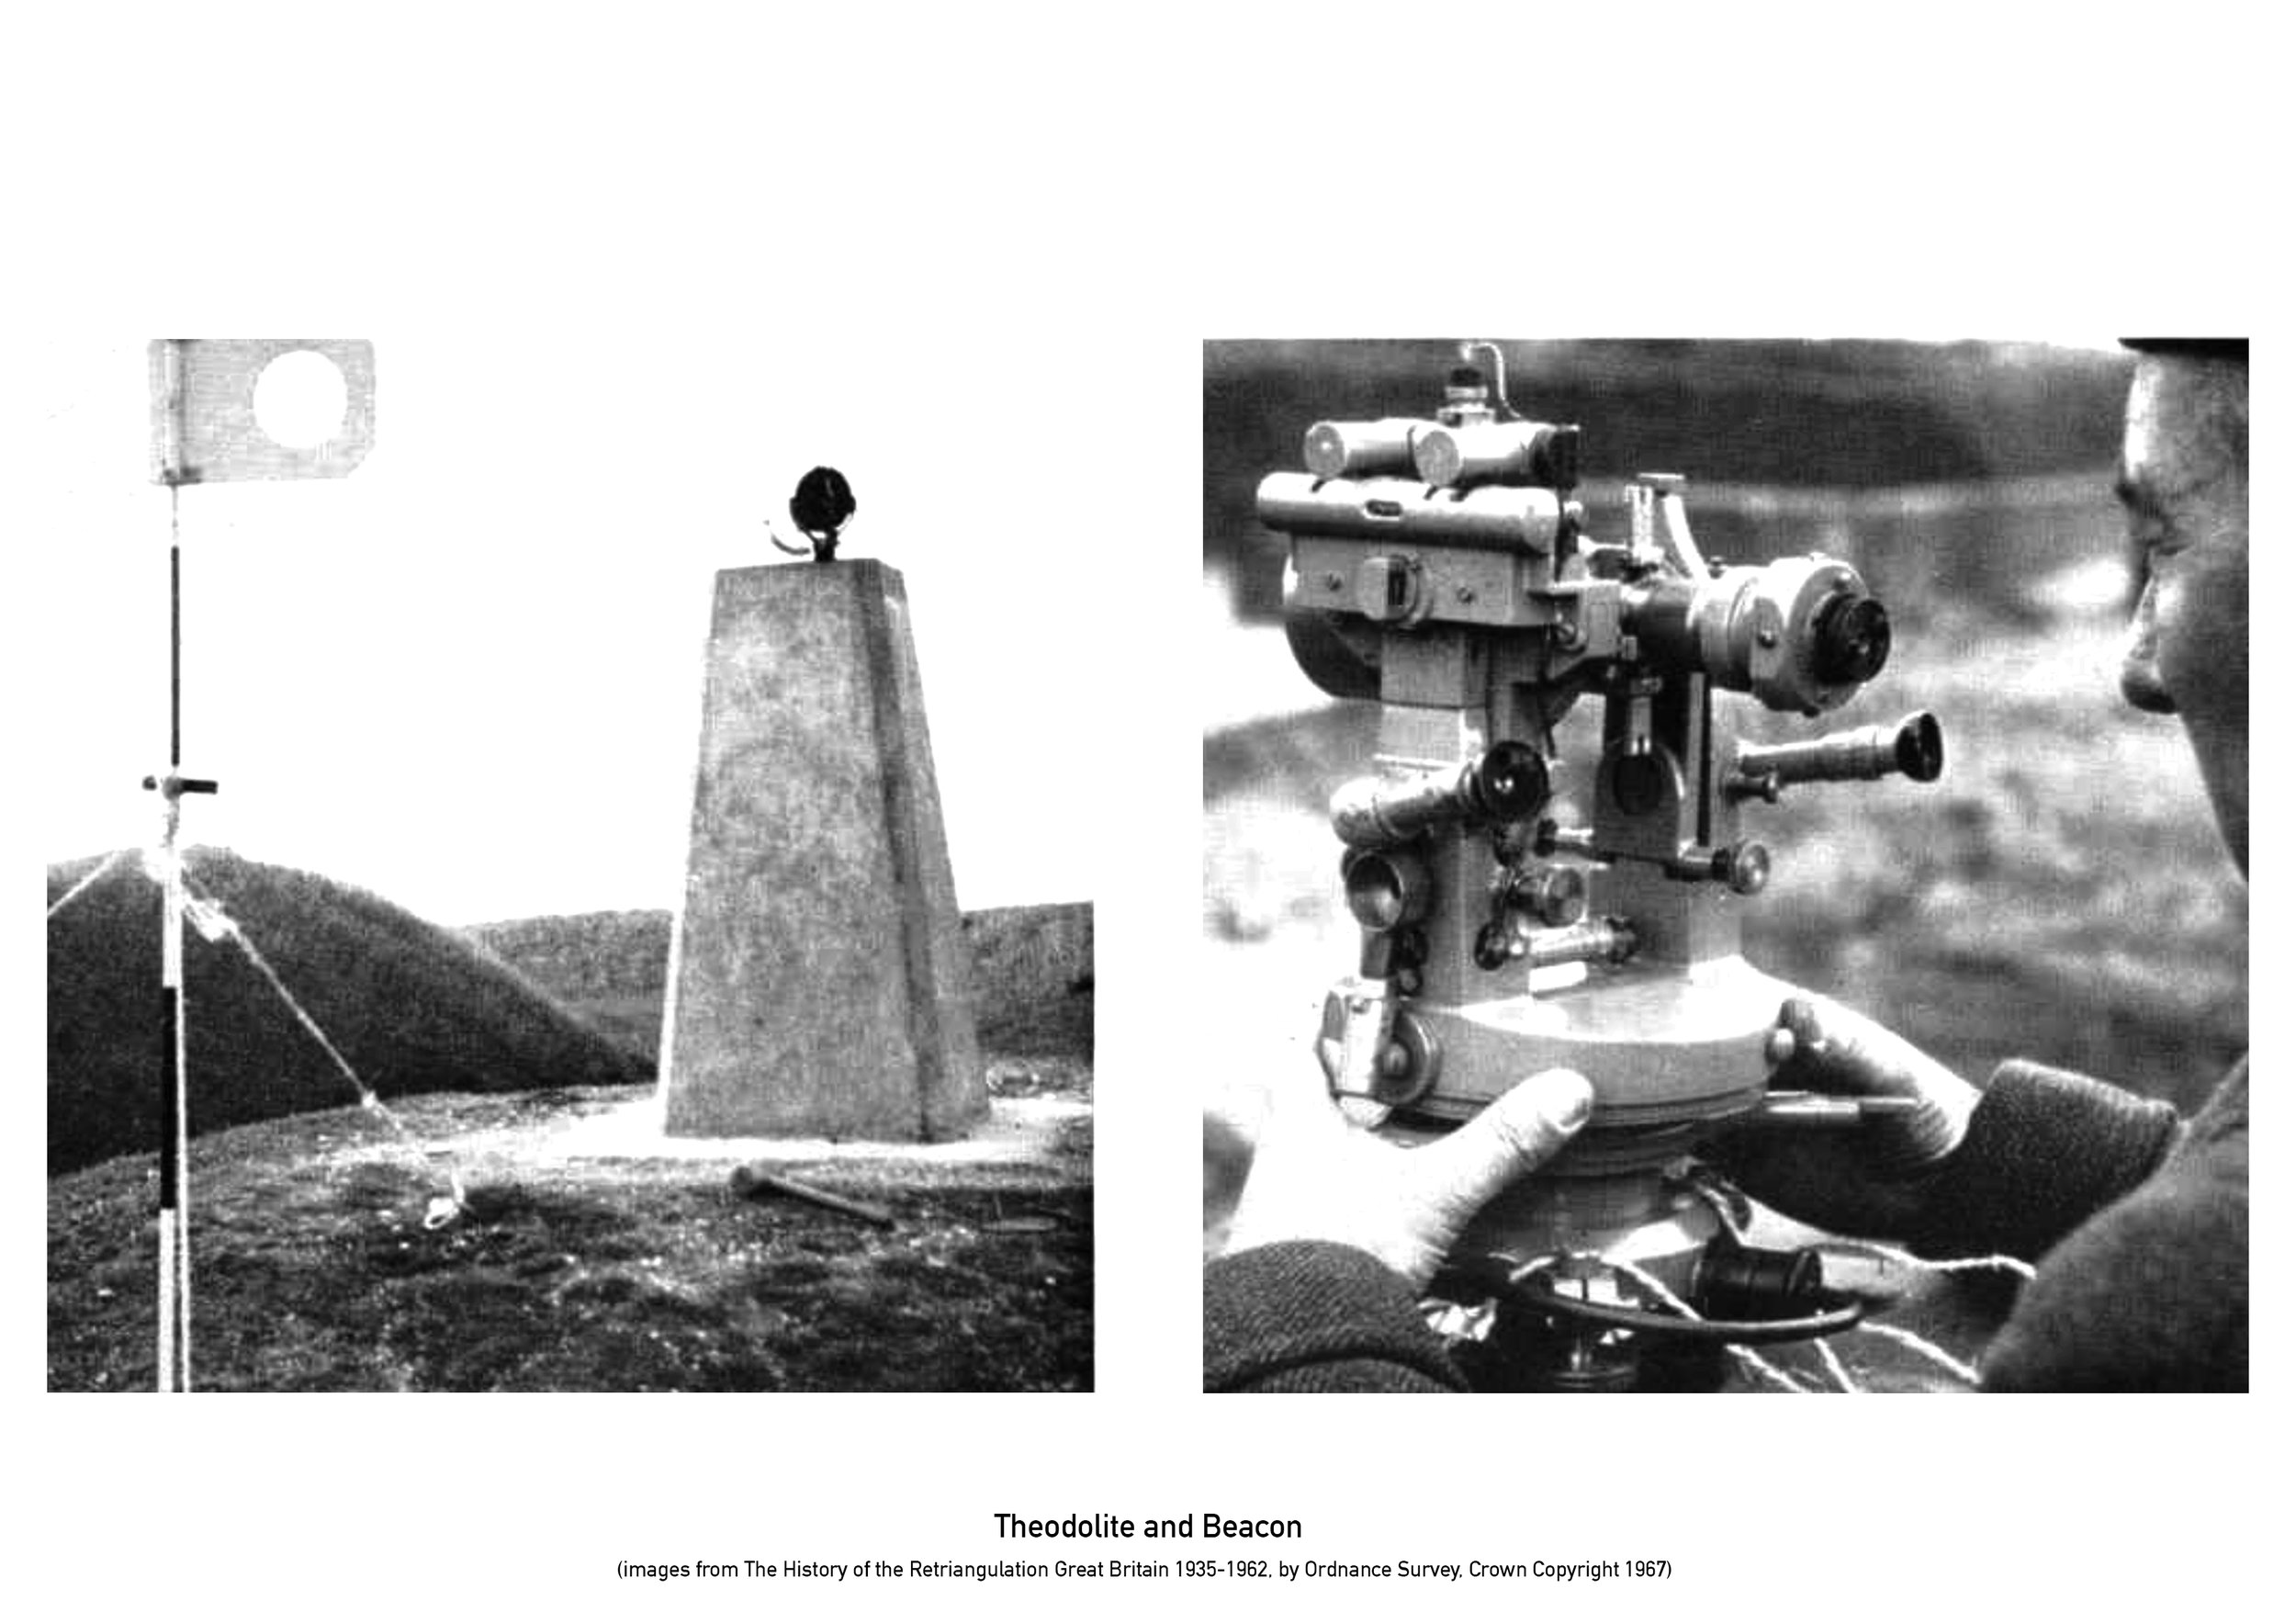 theodolite and beacon.jpg